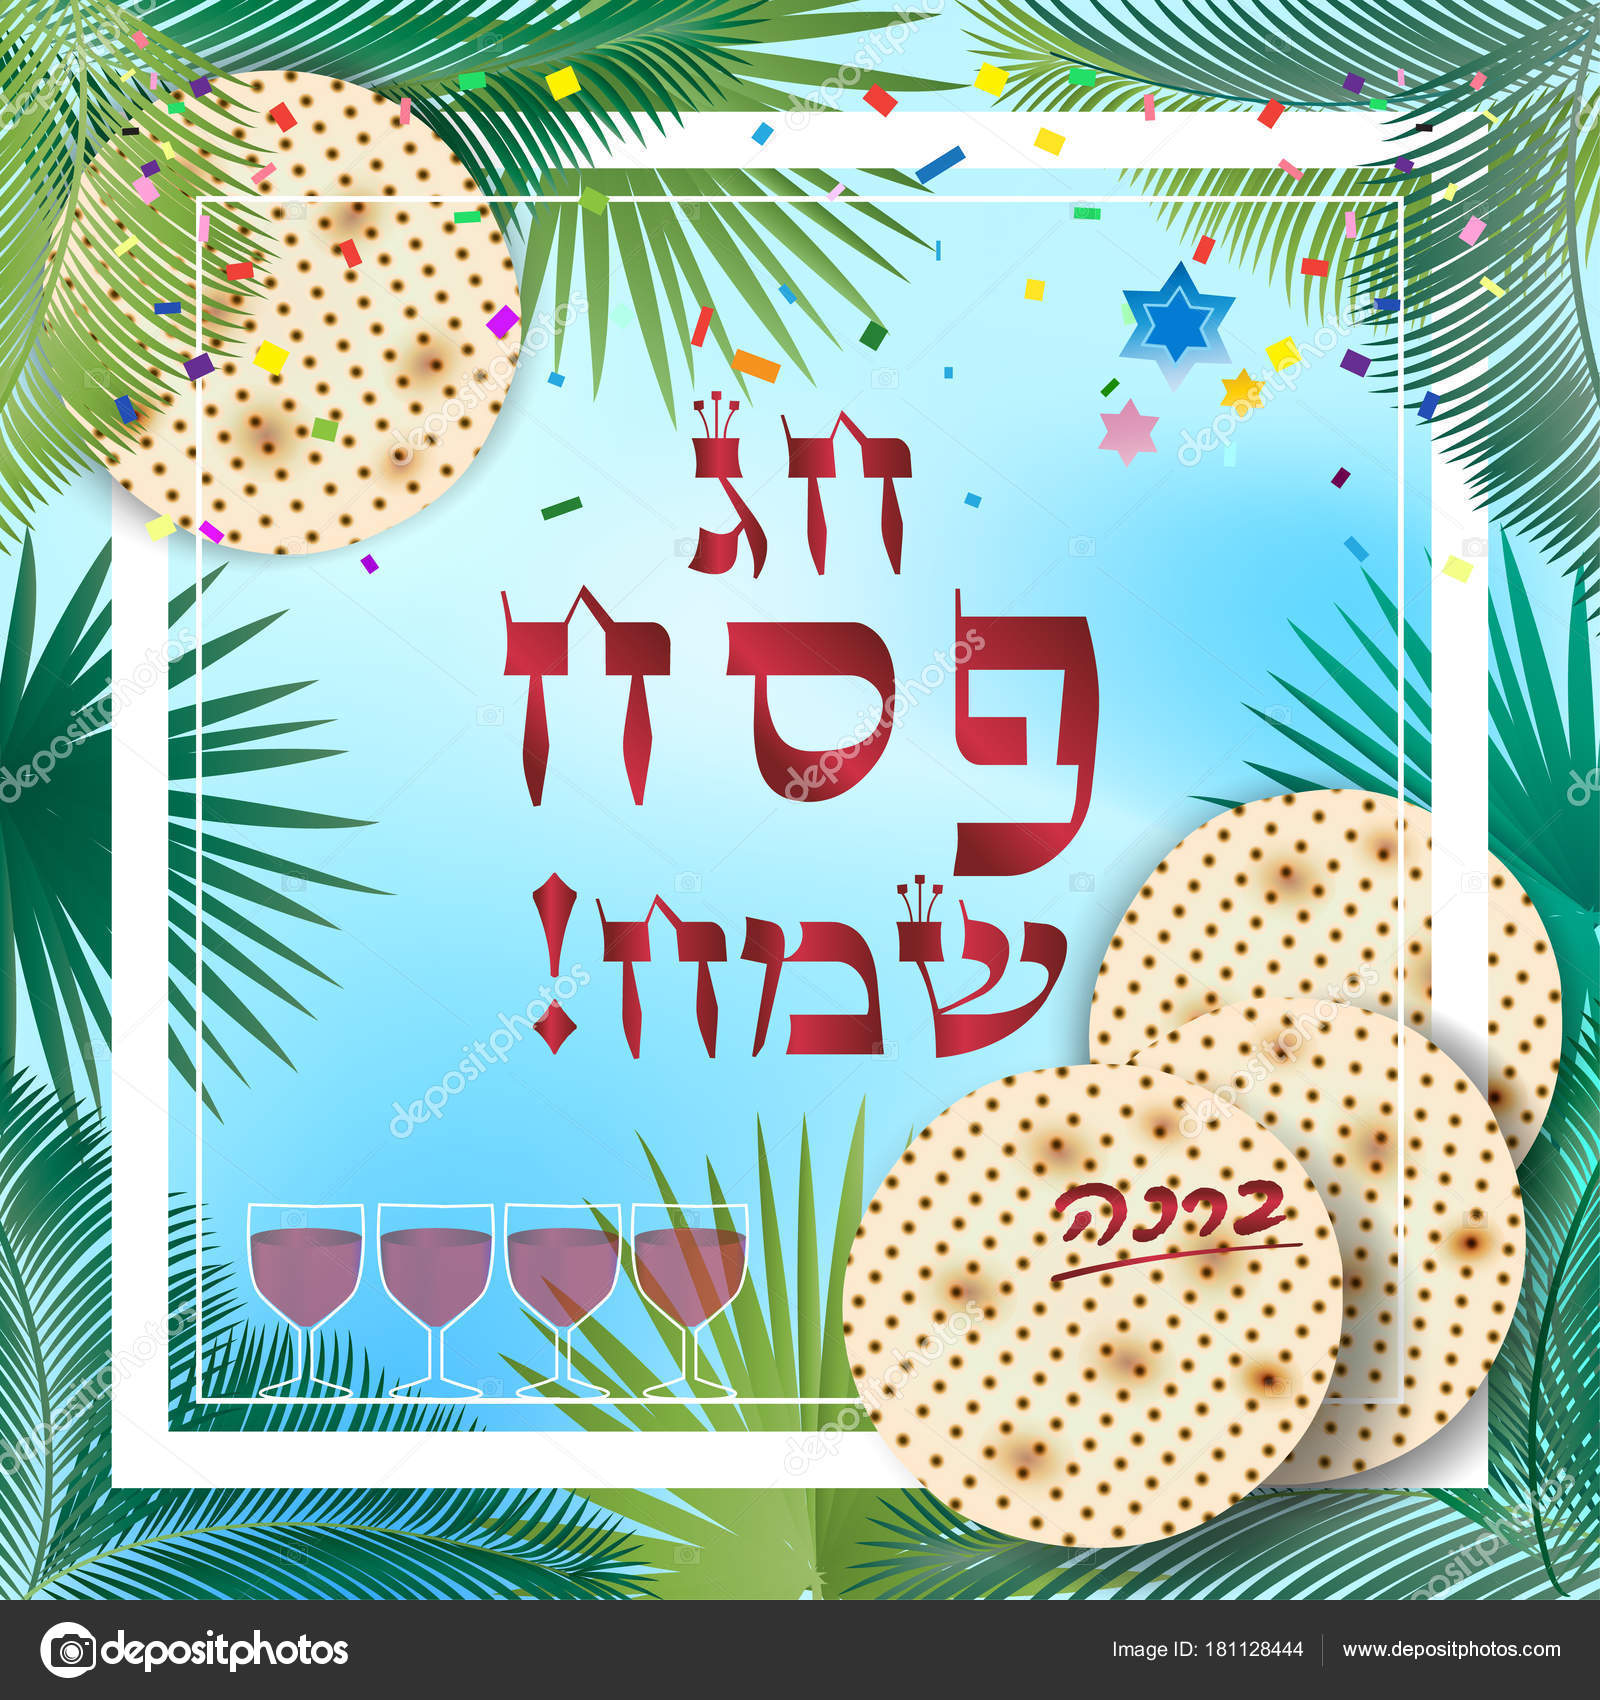 Happy passover holiday translate hebrew lettering greeting card happy passover holiday translate from hebrew lettering greeting card decorative ornamental palm leaves frame confetti star david four wine glass m4hsunfo Image collections